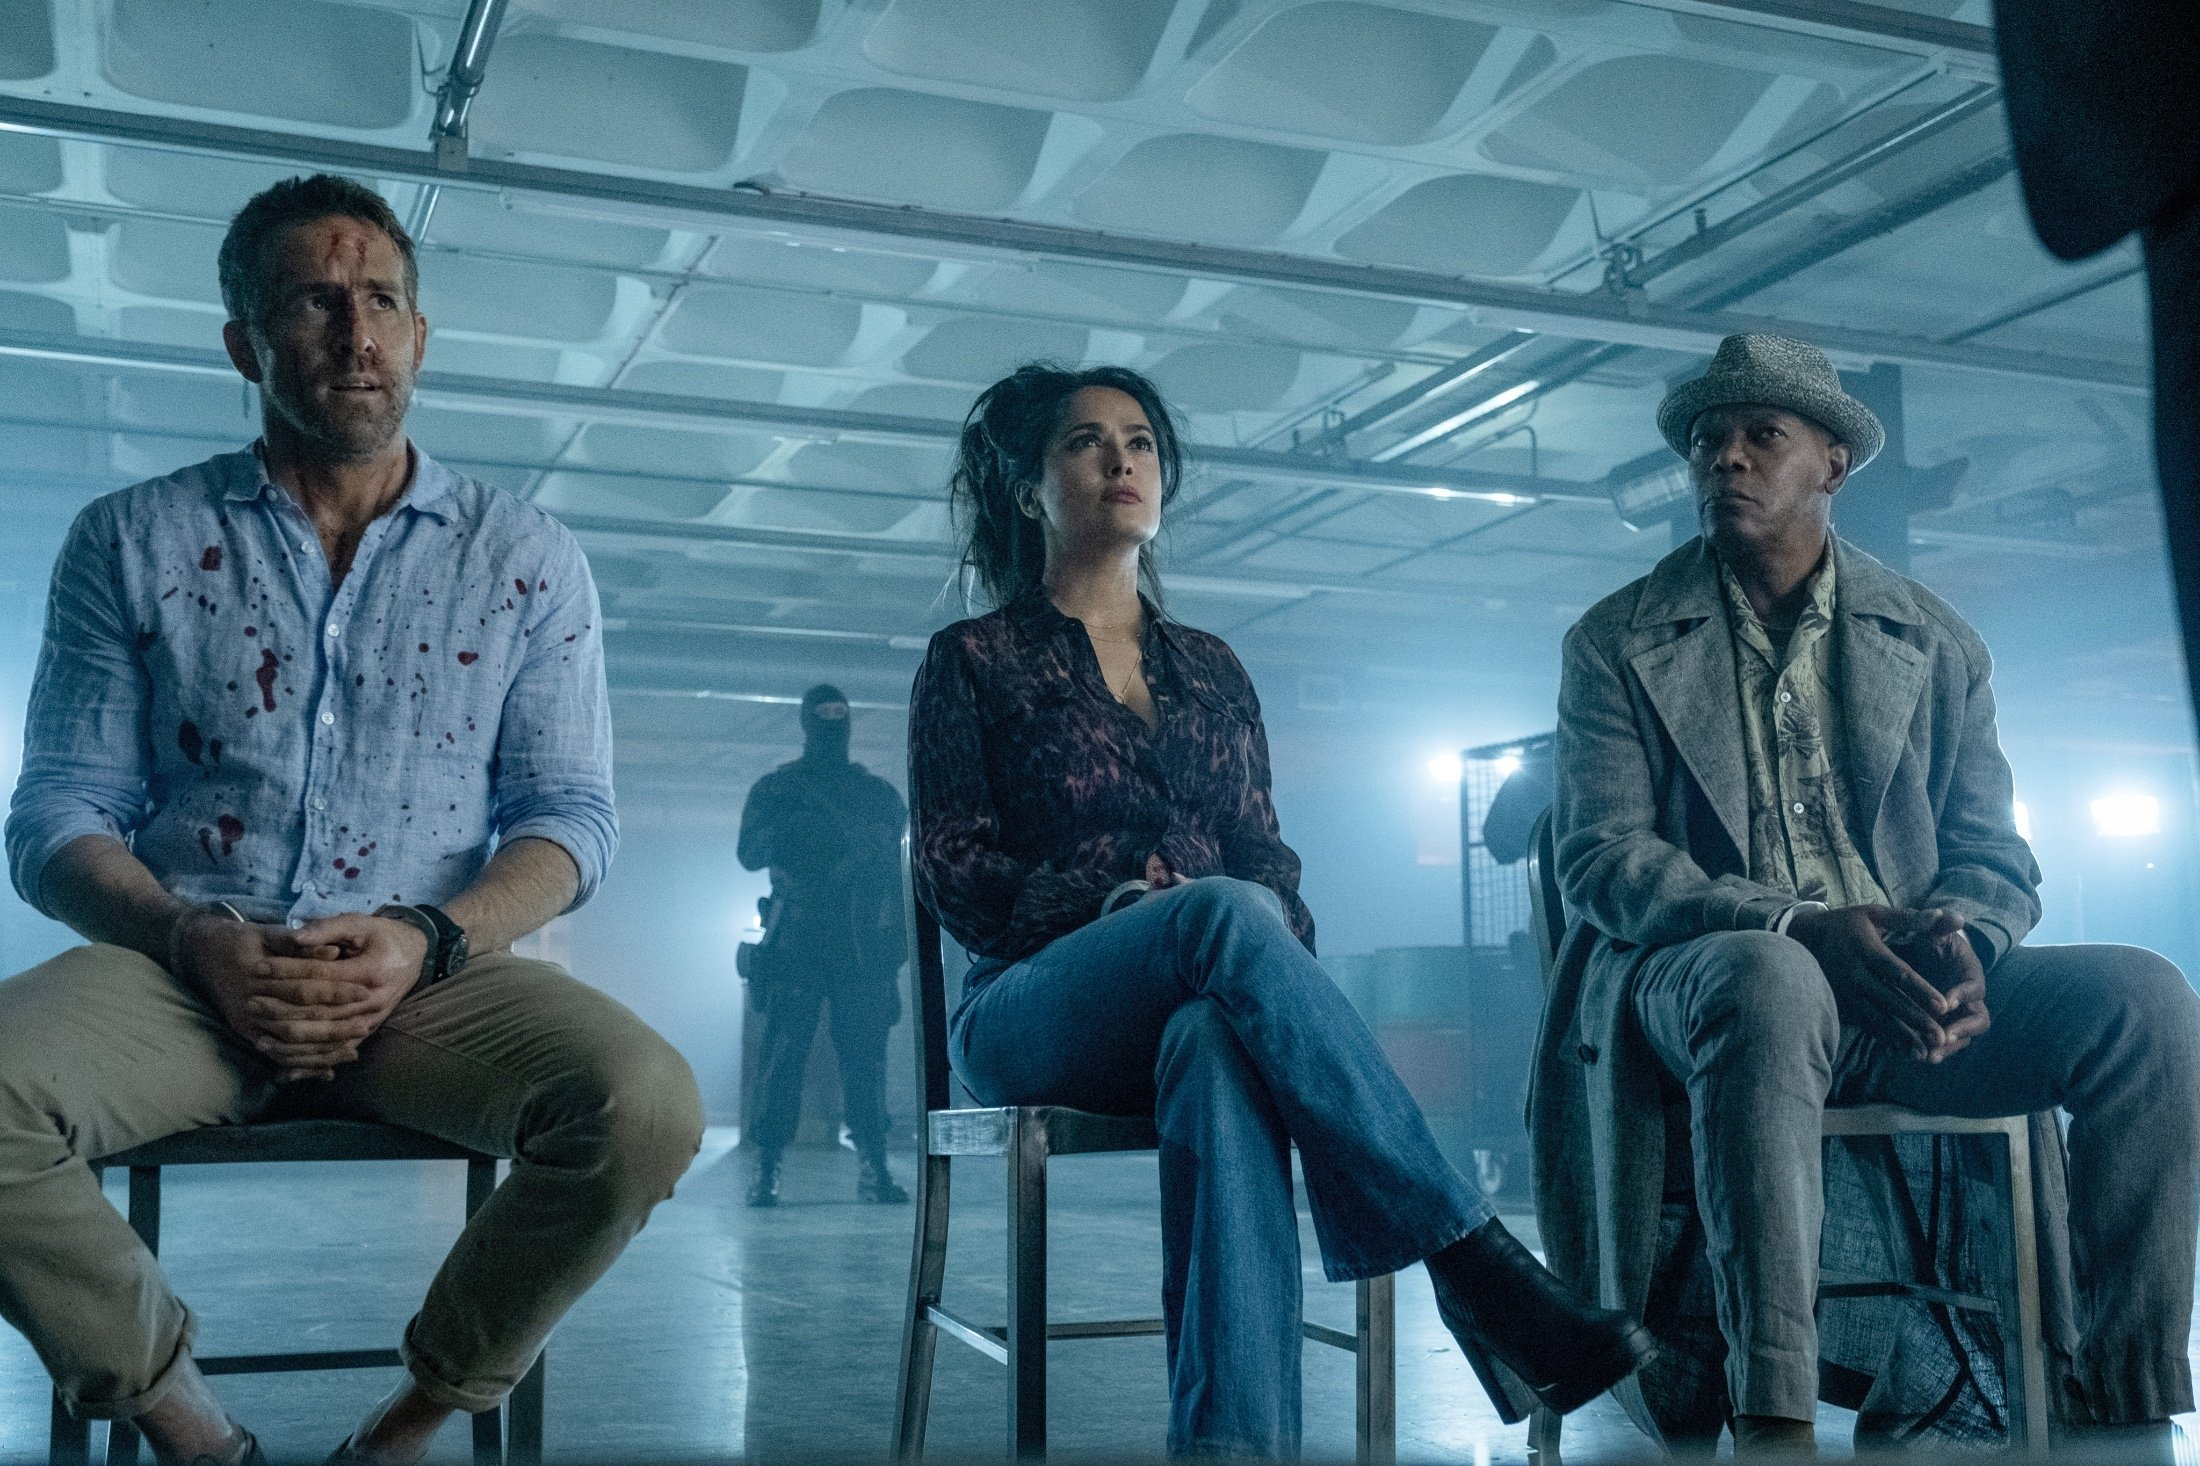 Ryan Reynolds (L), Salma Hayek (C) and Samuel L. Jackson sit together in handcuffs, in a scene from the movie, 'The Hitman's Wife's Bodyguard.' (Lionsgate via AP)